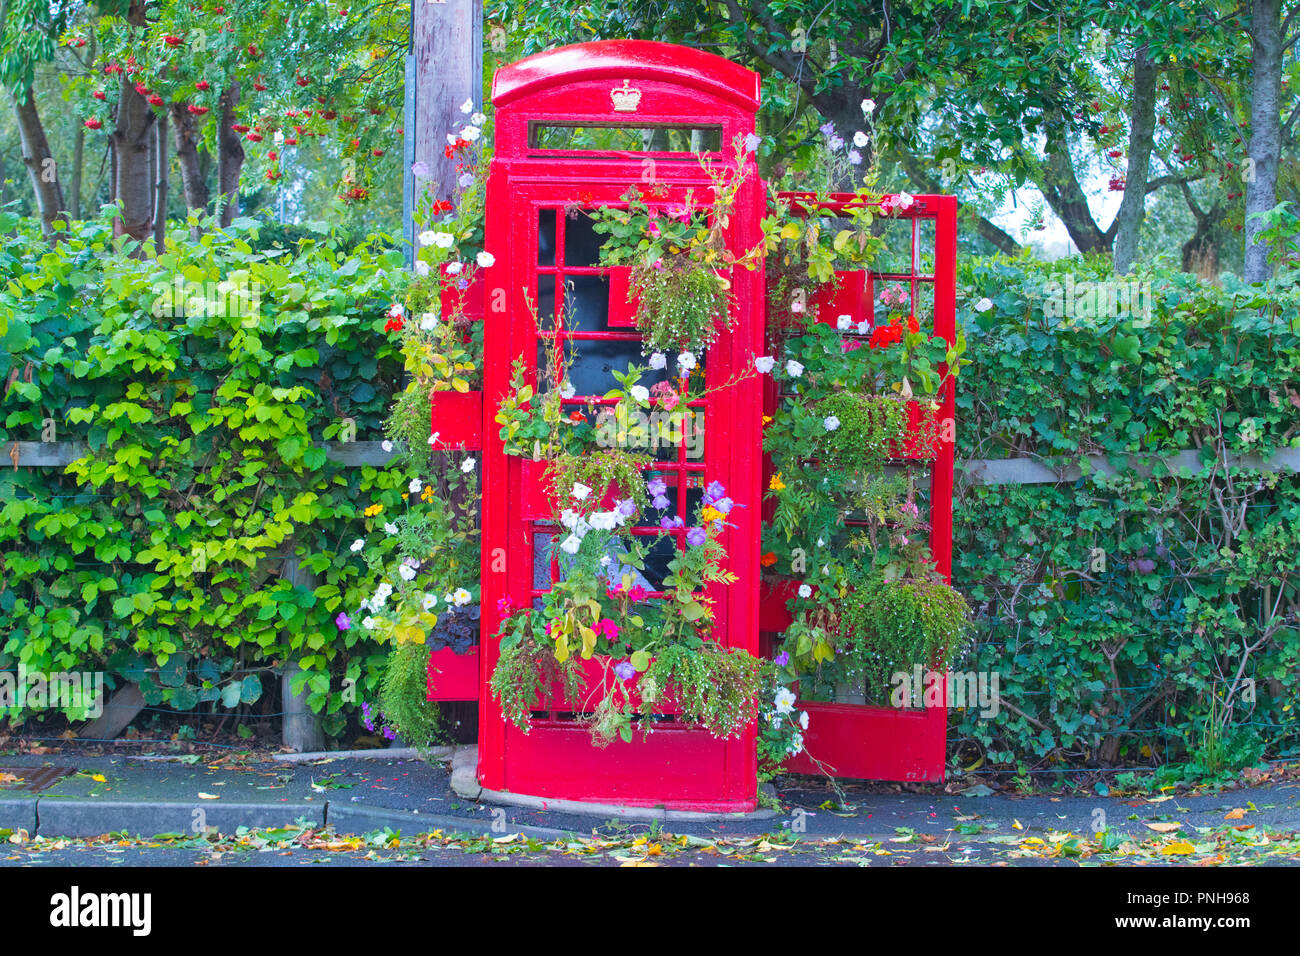 A Red UK Telephone Box that has been converted into a planter - Stock Image